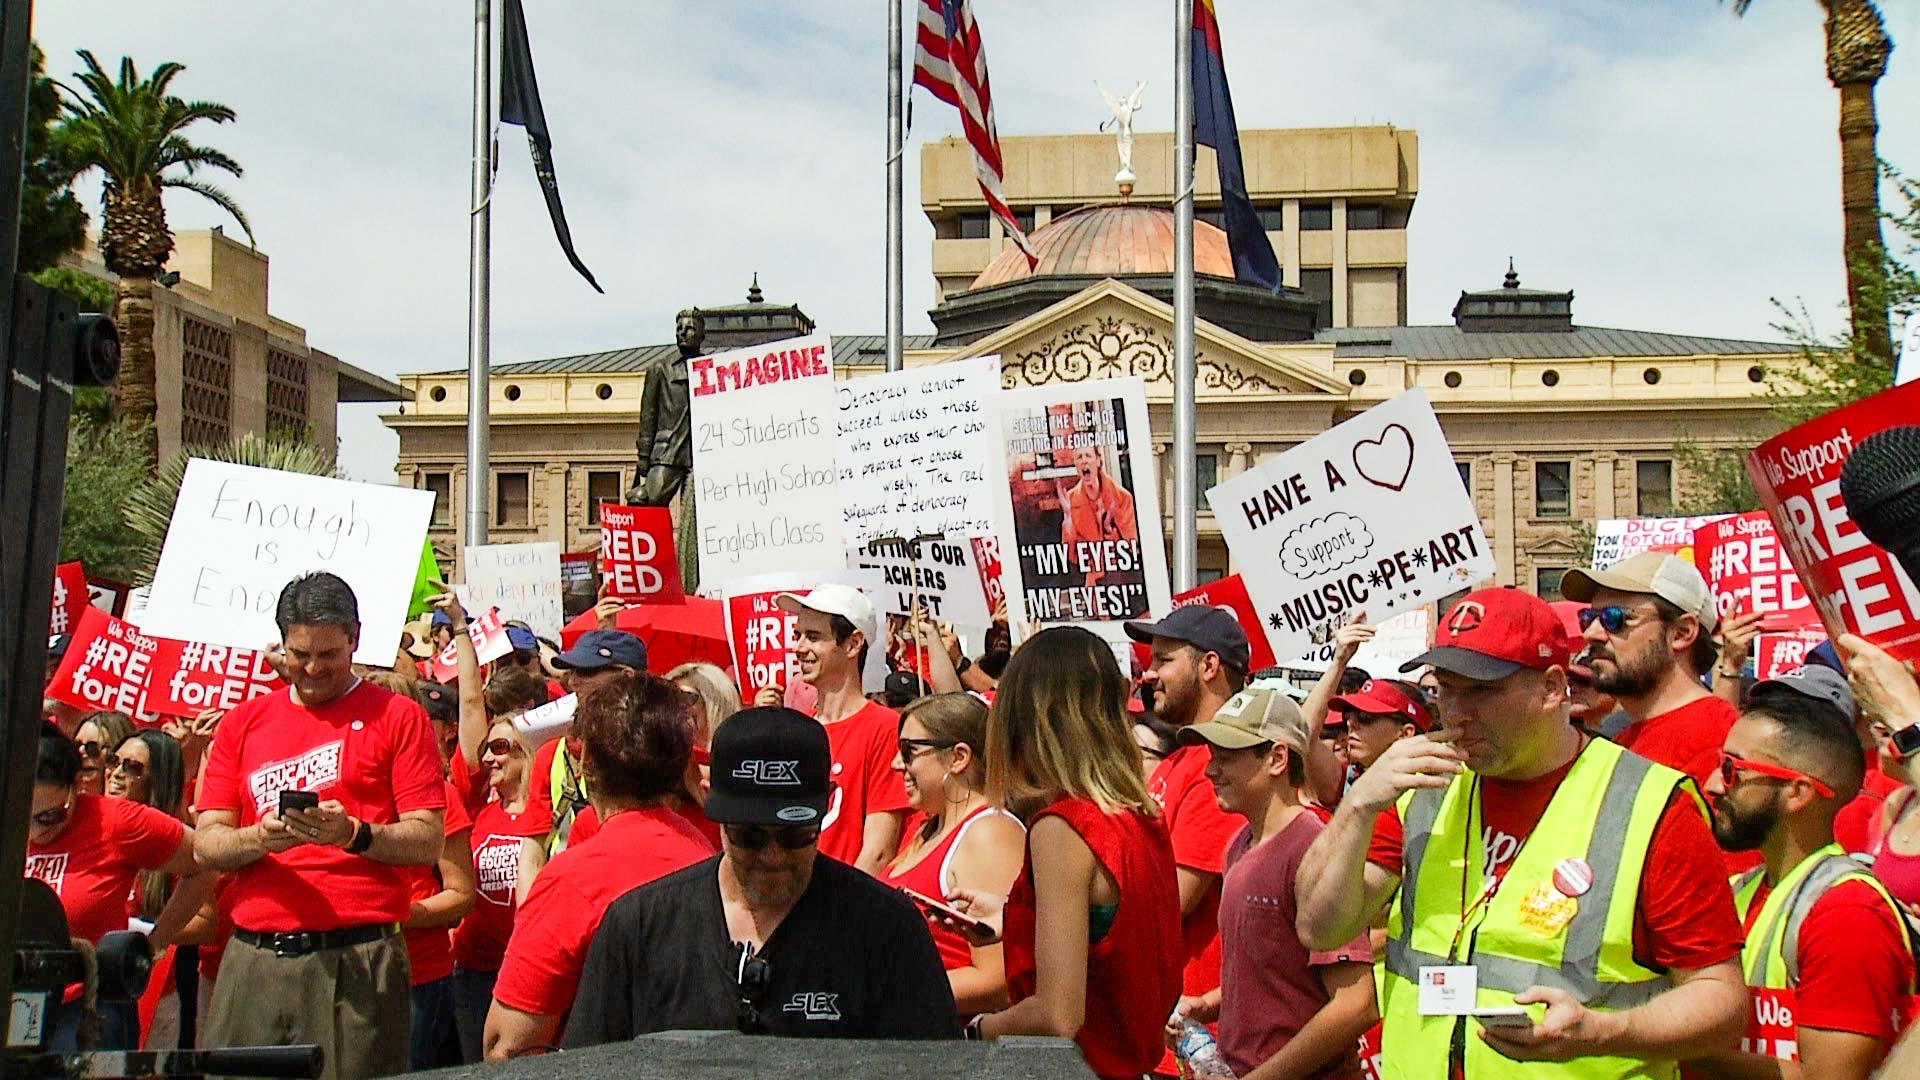 #RedforEd demonstrators gather at the Arizona Capitol, Monday, April 30, 2018, to protest for increased education funding.